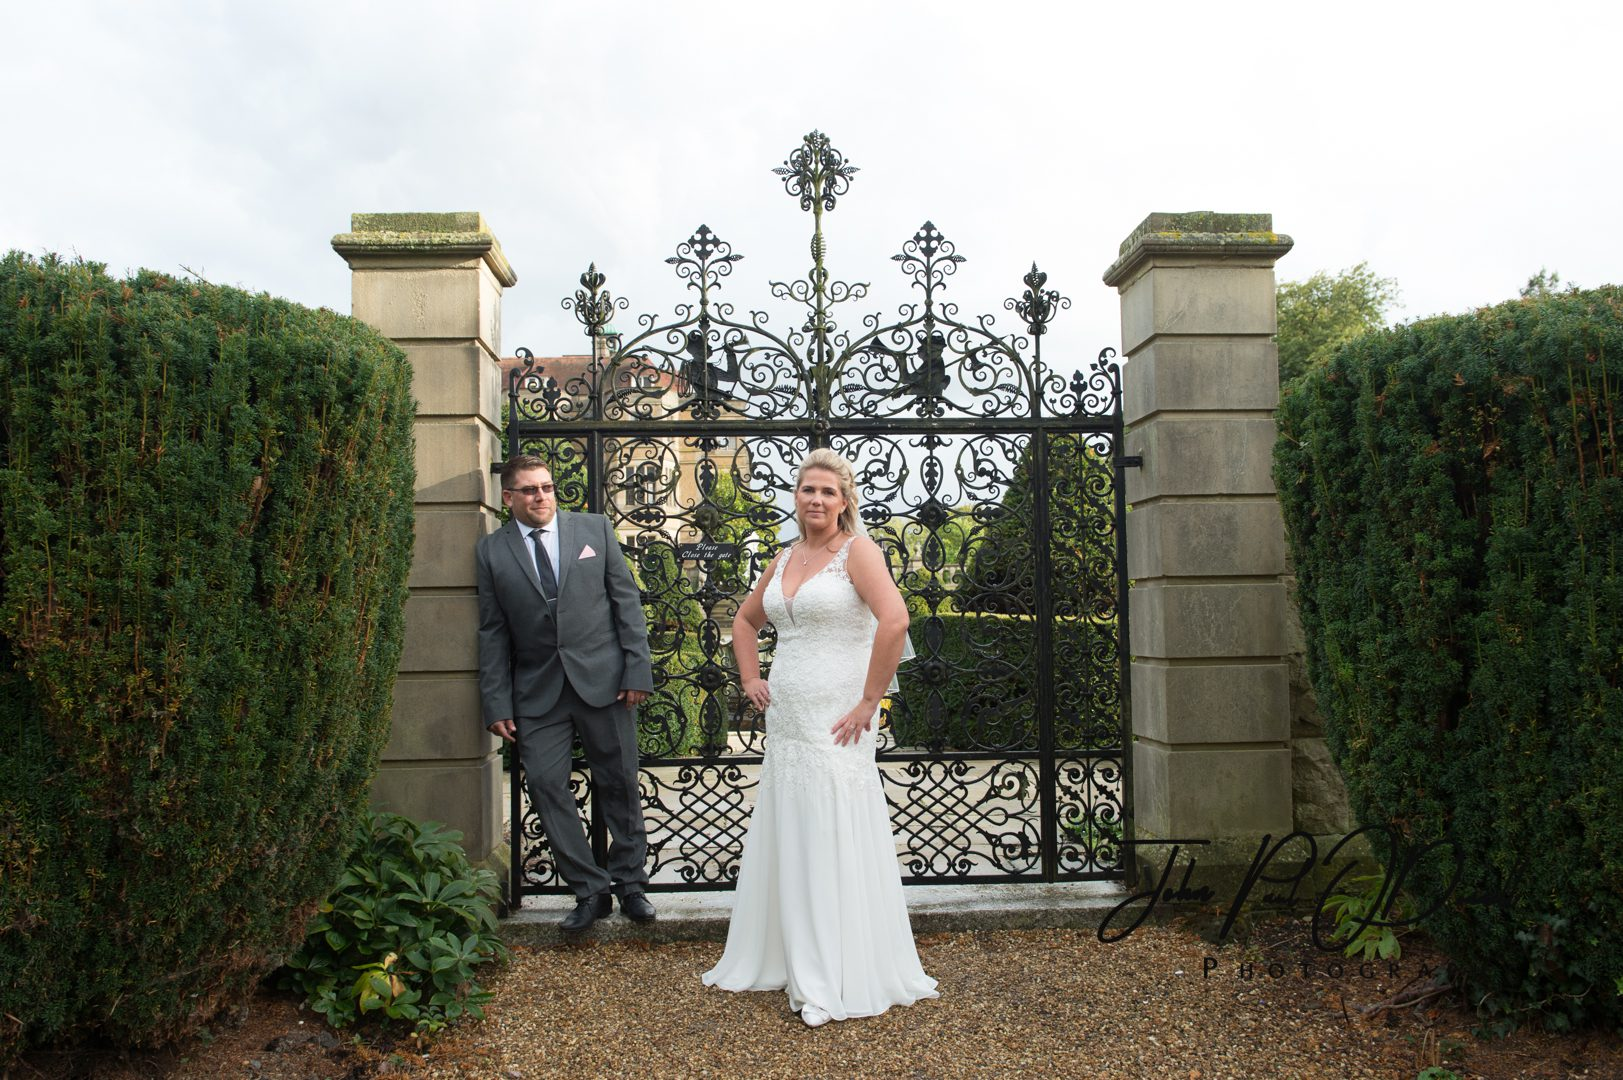 Danielle and Roberts Wedding at Fanhams Hall